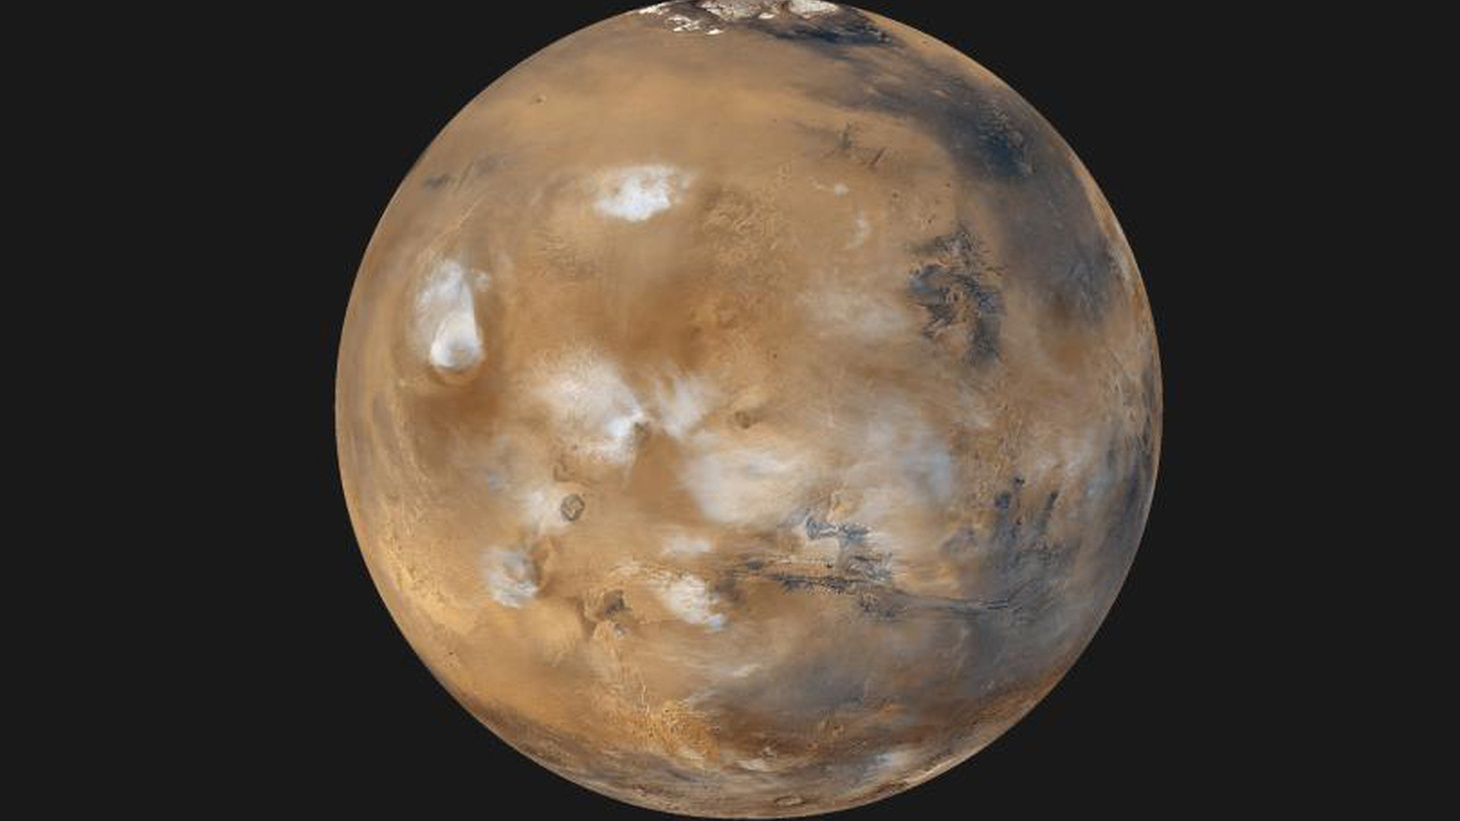 NASA has announced that liquid water has been discovered on the surface of Mars. What does this mean for space exploration? And how much do you know about the Defense Advanced Research Projects Agency? It's the most powerful military science agency in the world and it's also one of the most secretive.